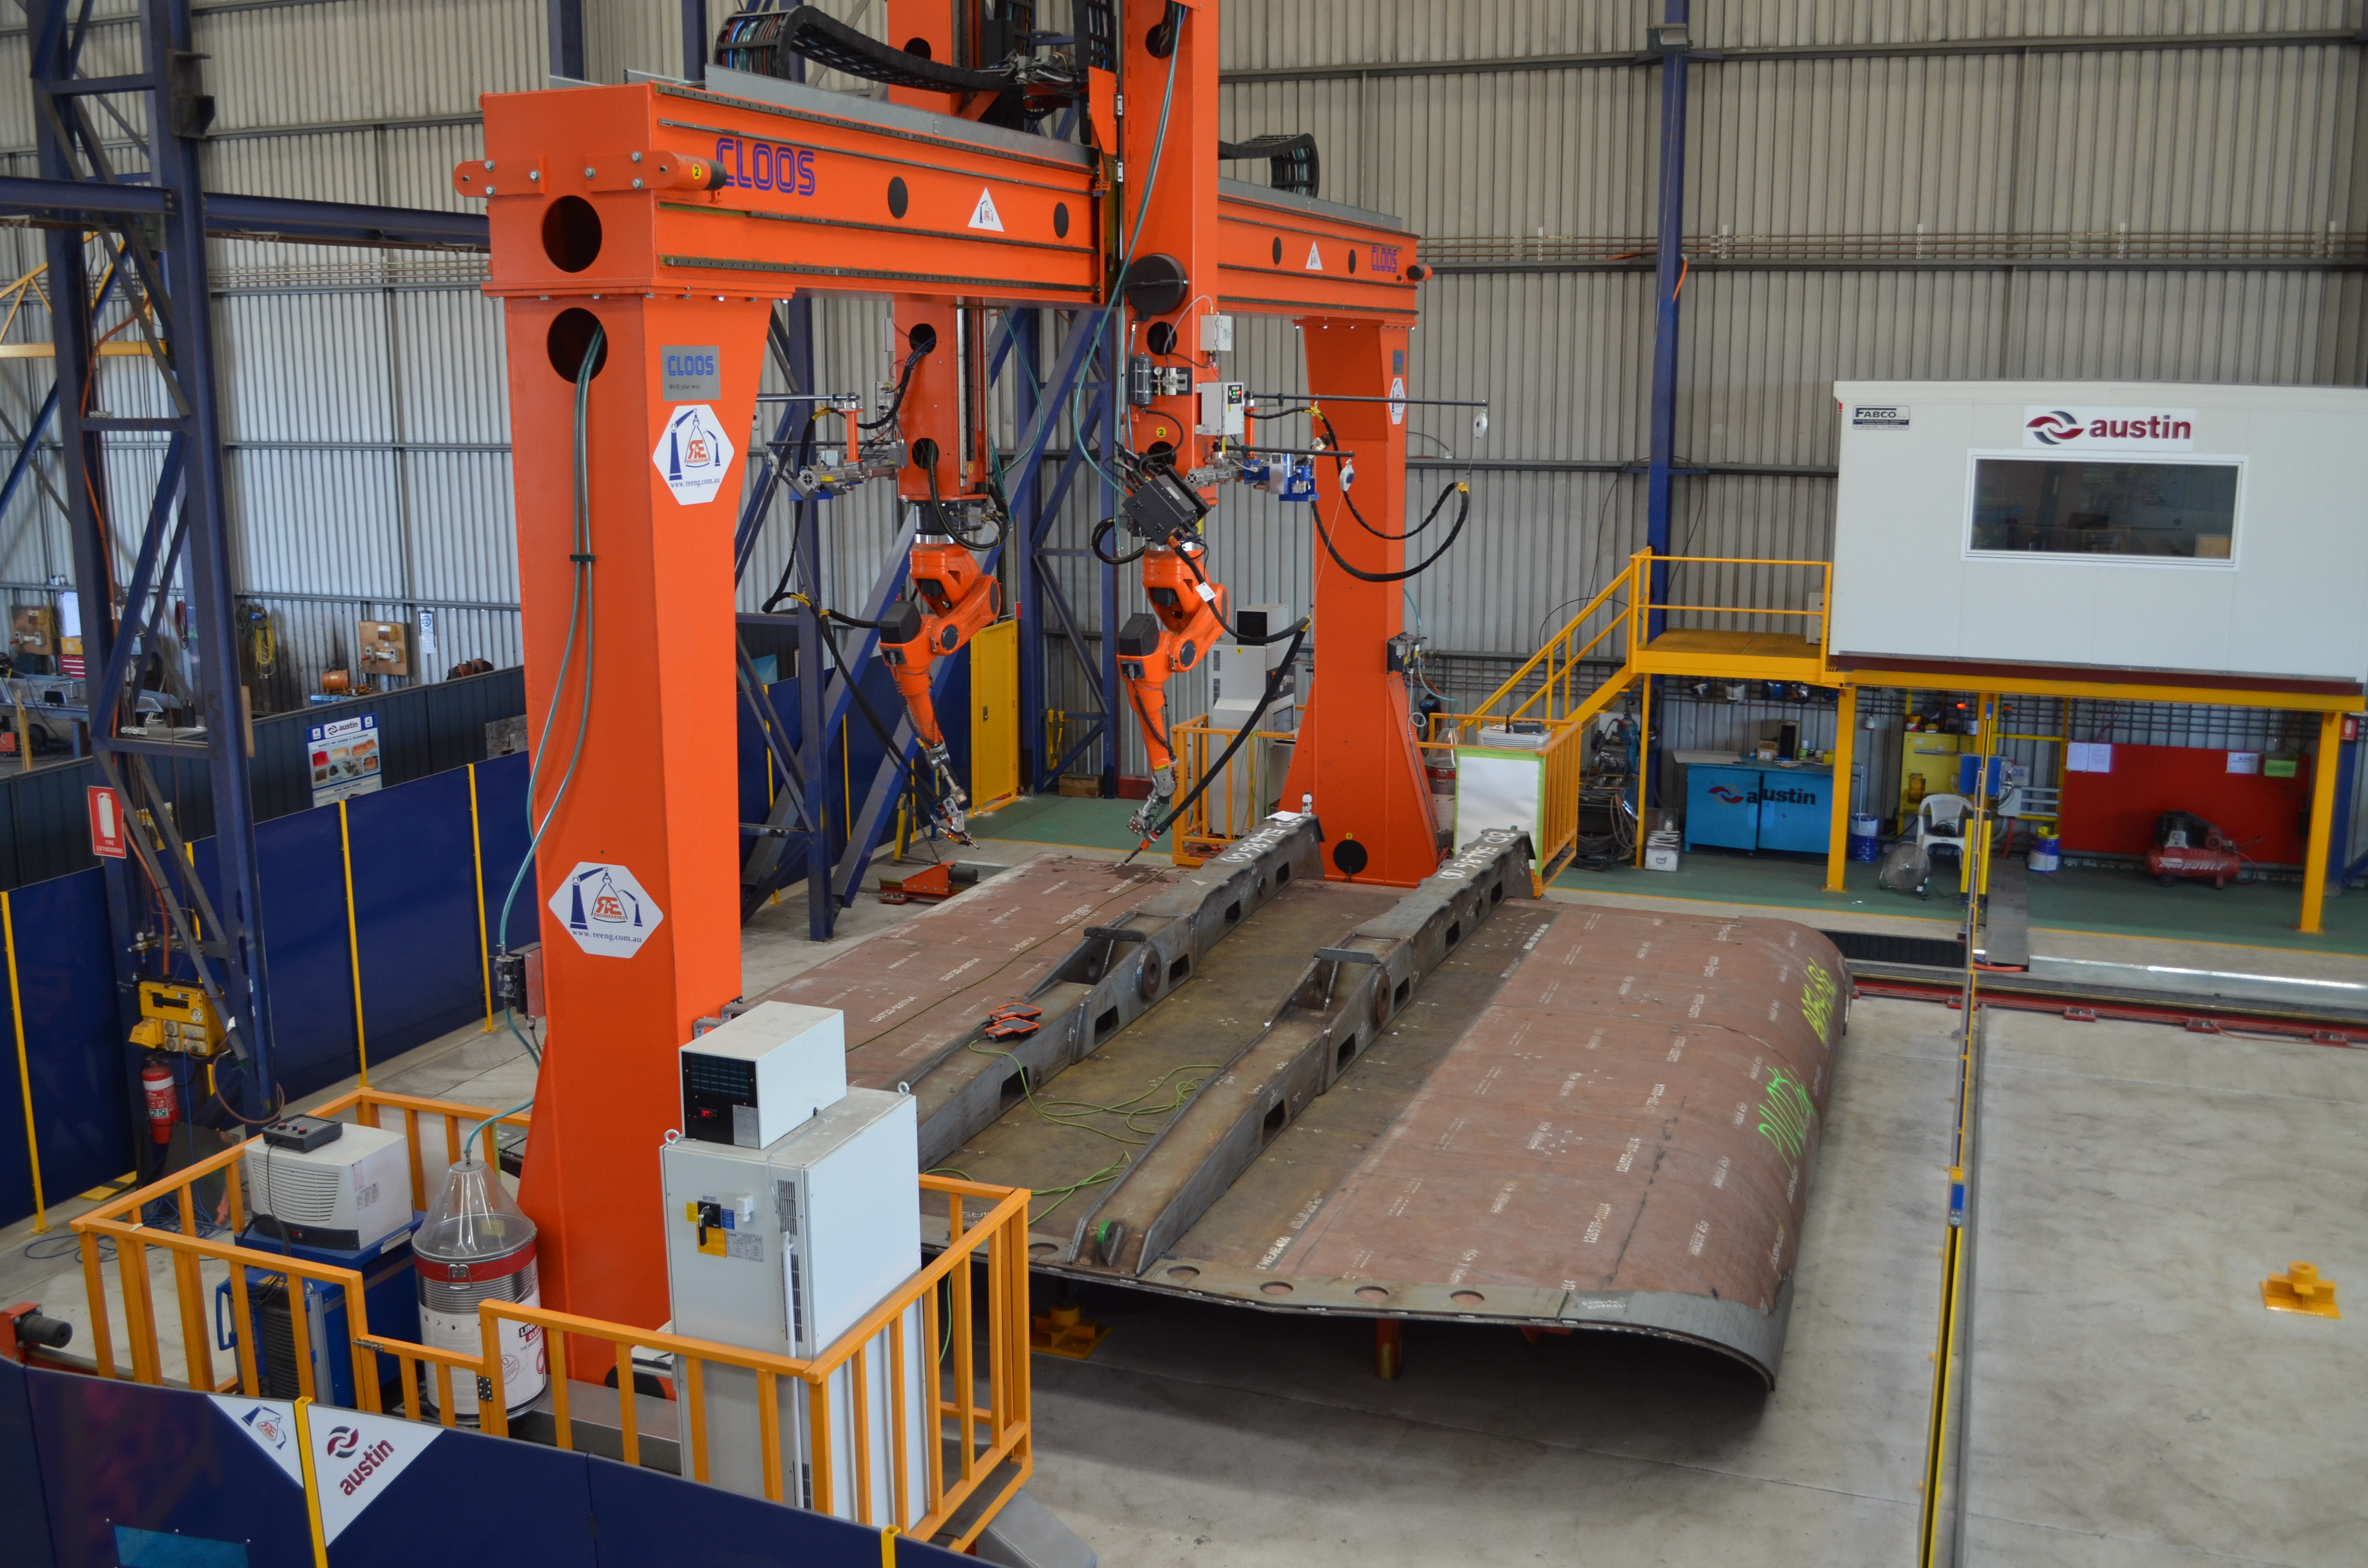 Austin Engineering Robotic Welder To Boost Efficiency Productivity And Output International Mining